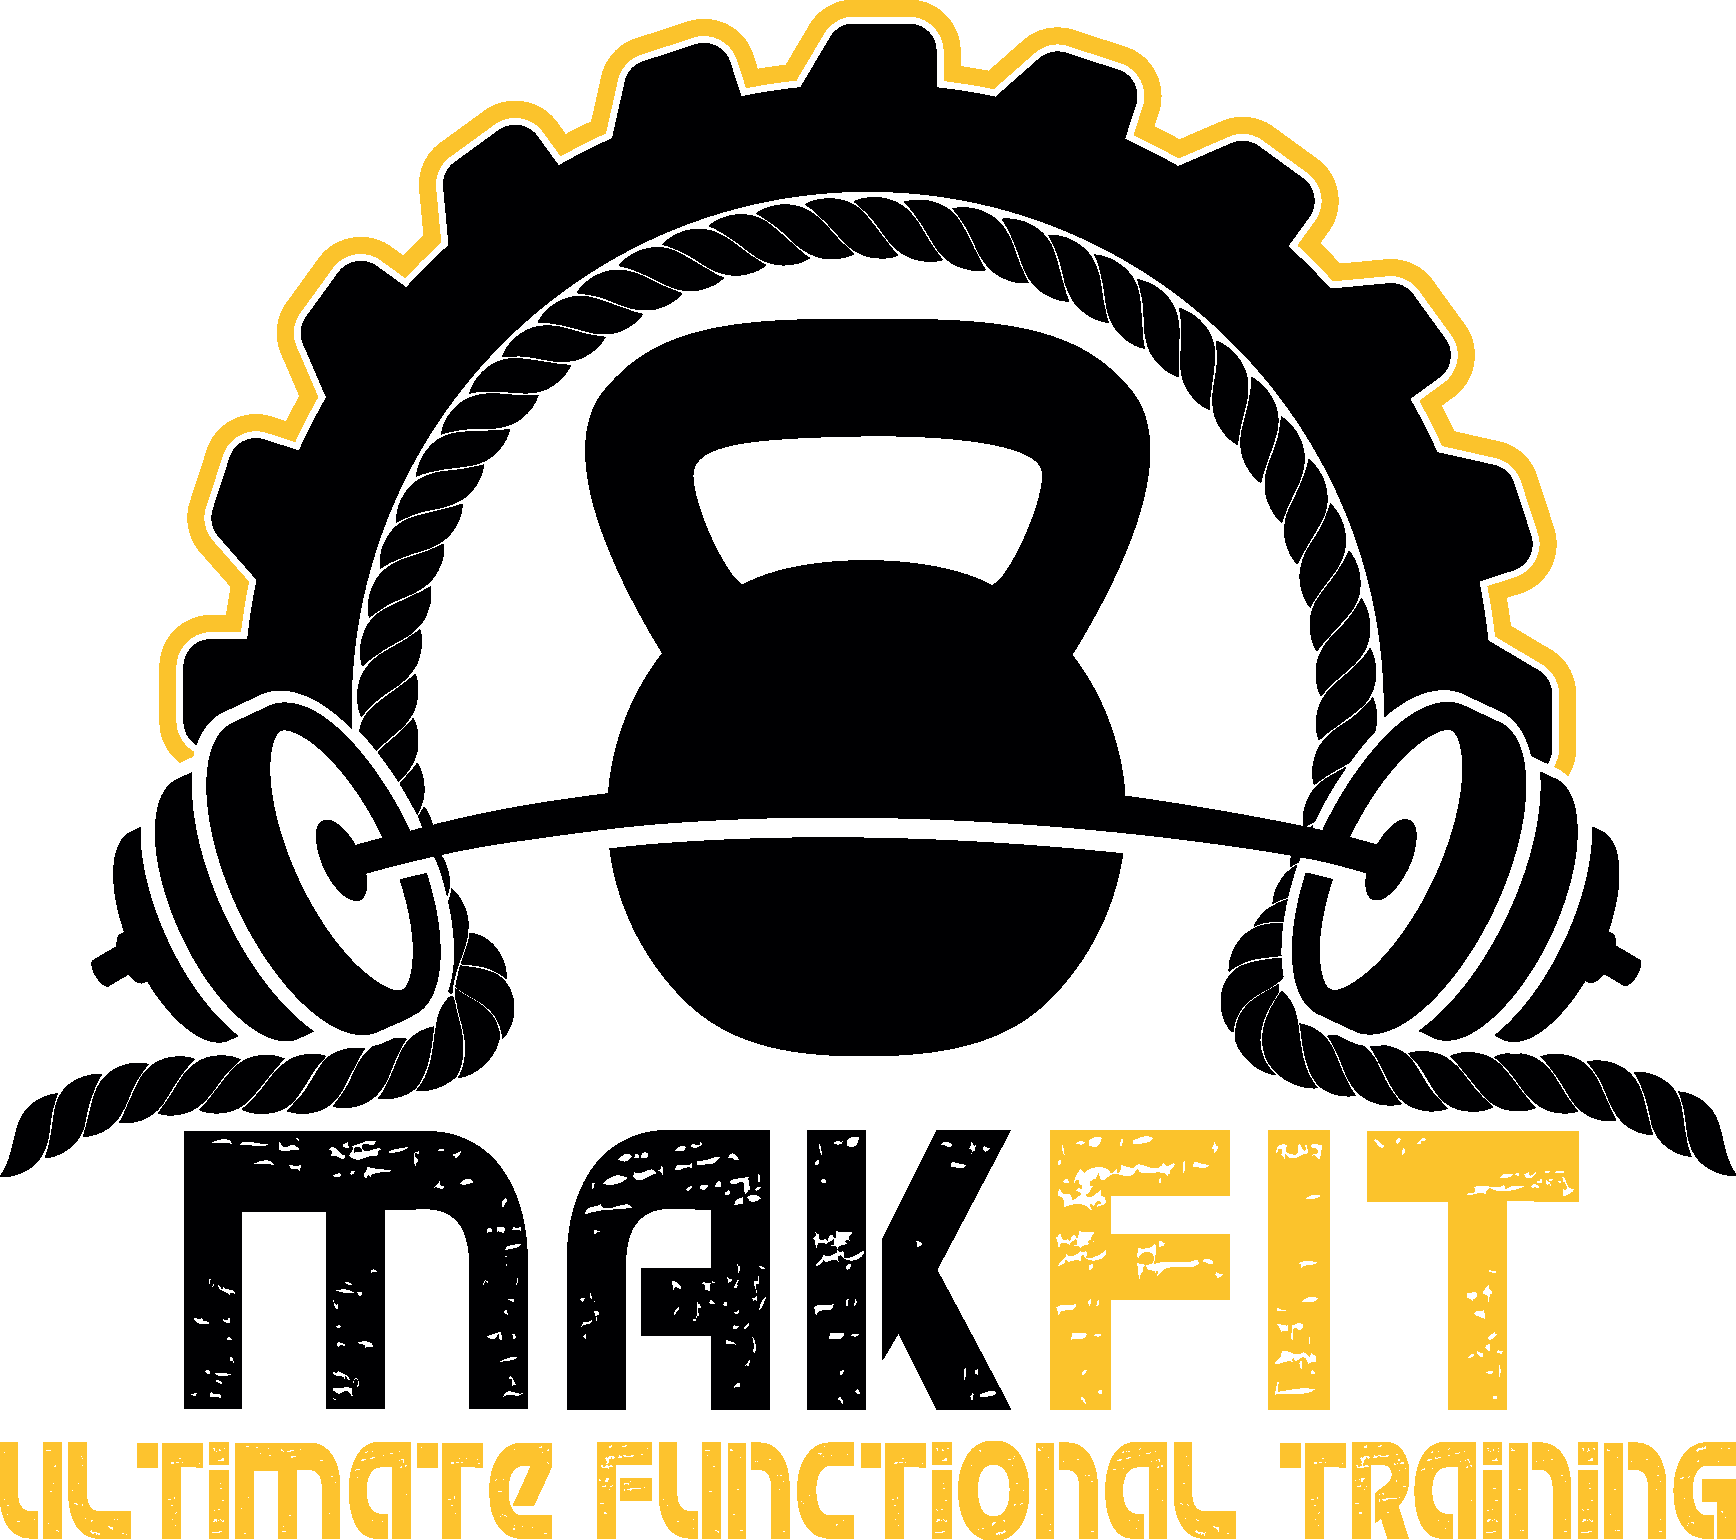 Gym clipart functional training. Makfit logo new gold